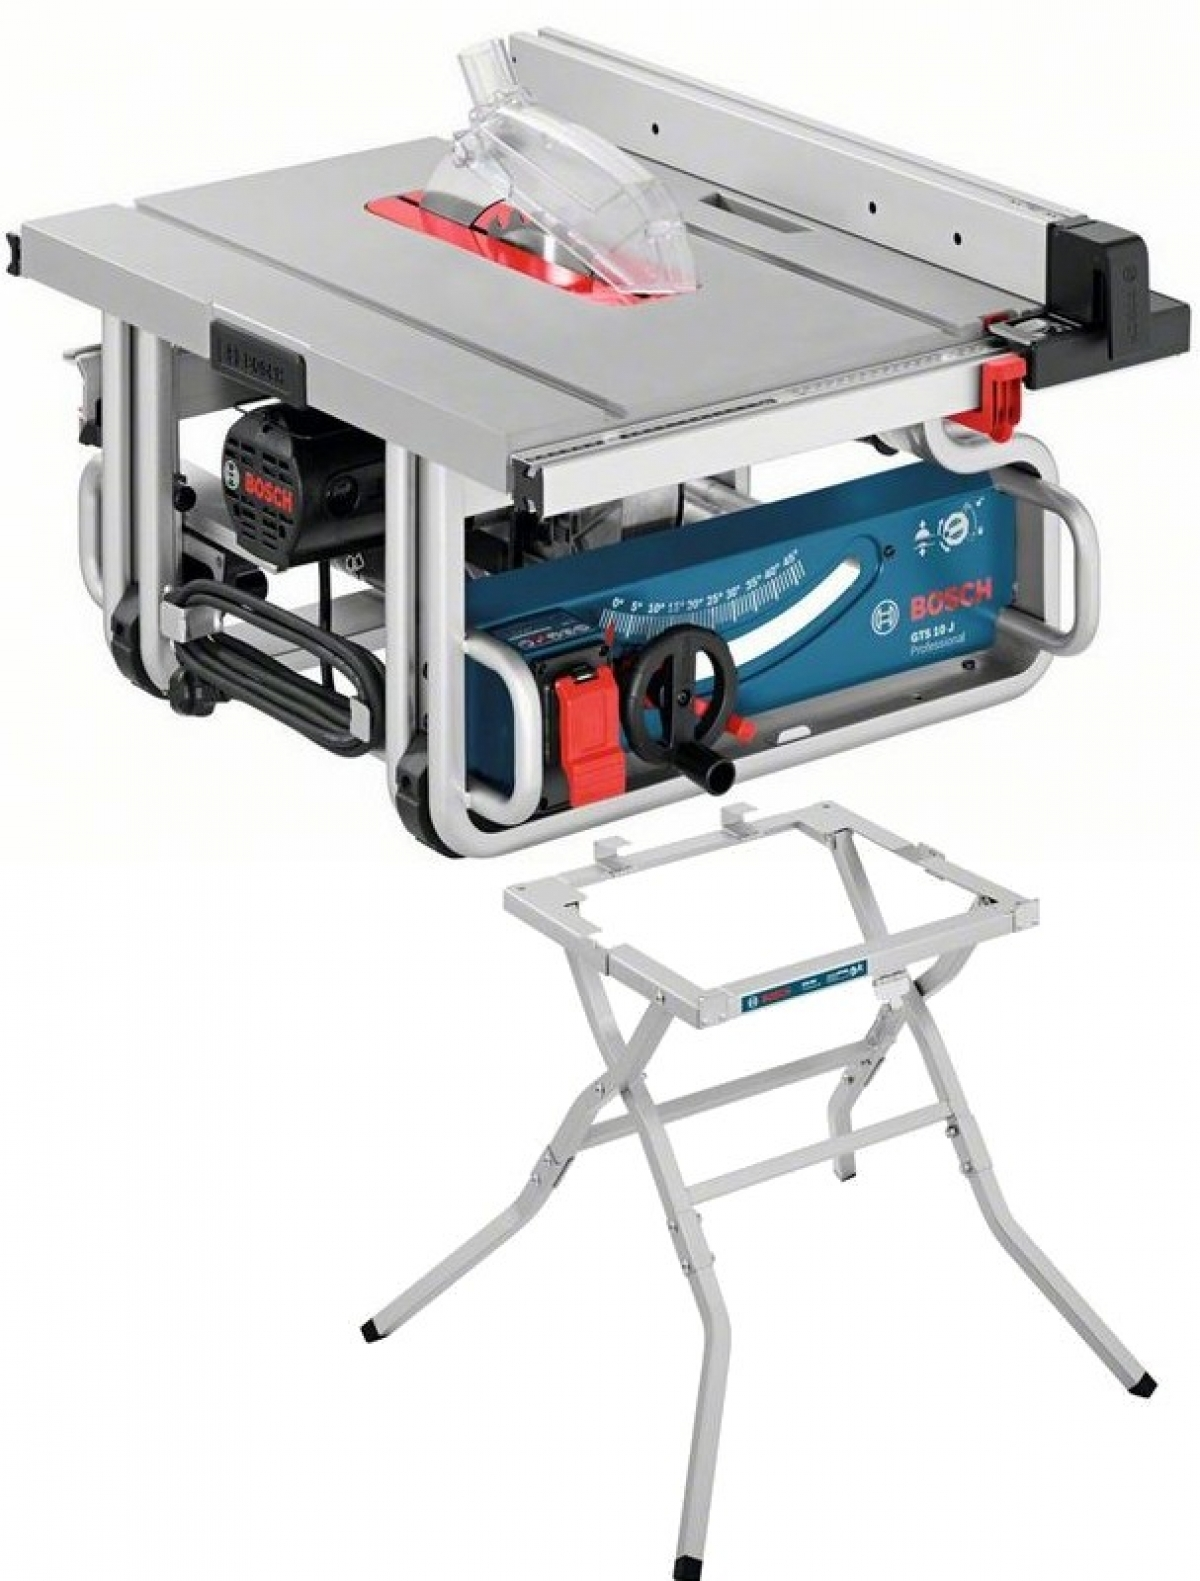 Bosch 1800w 10 Bench Table Saw With Work Bench My Power Tools